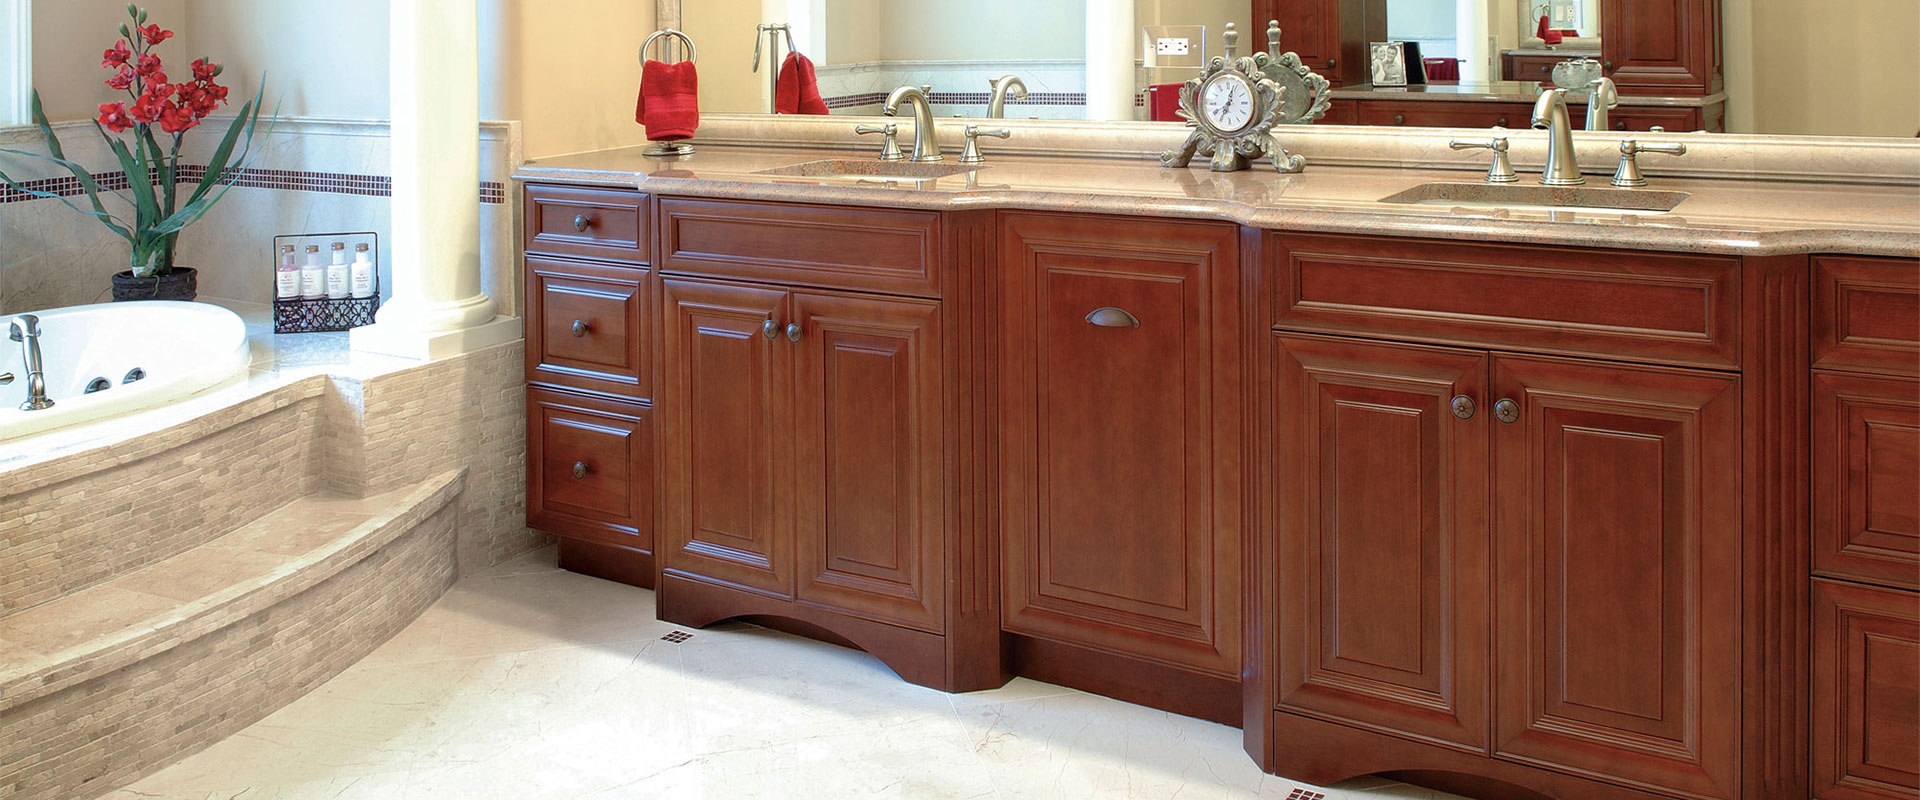 tampa kitchen cabinets granite countertops real wood. Black Bedroom Furniture Sets. Home Design Ideas